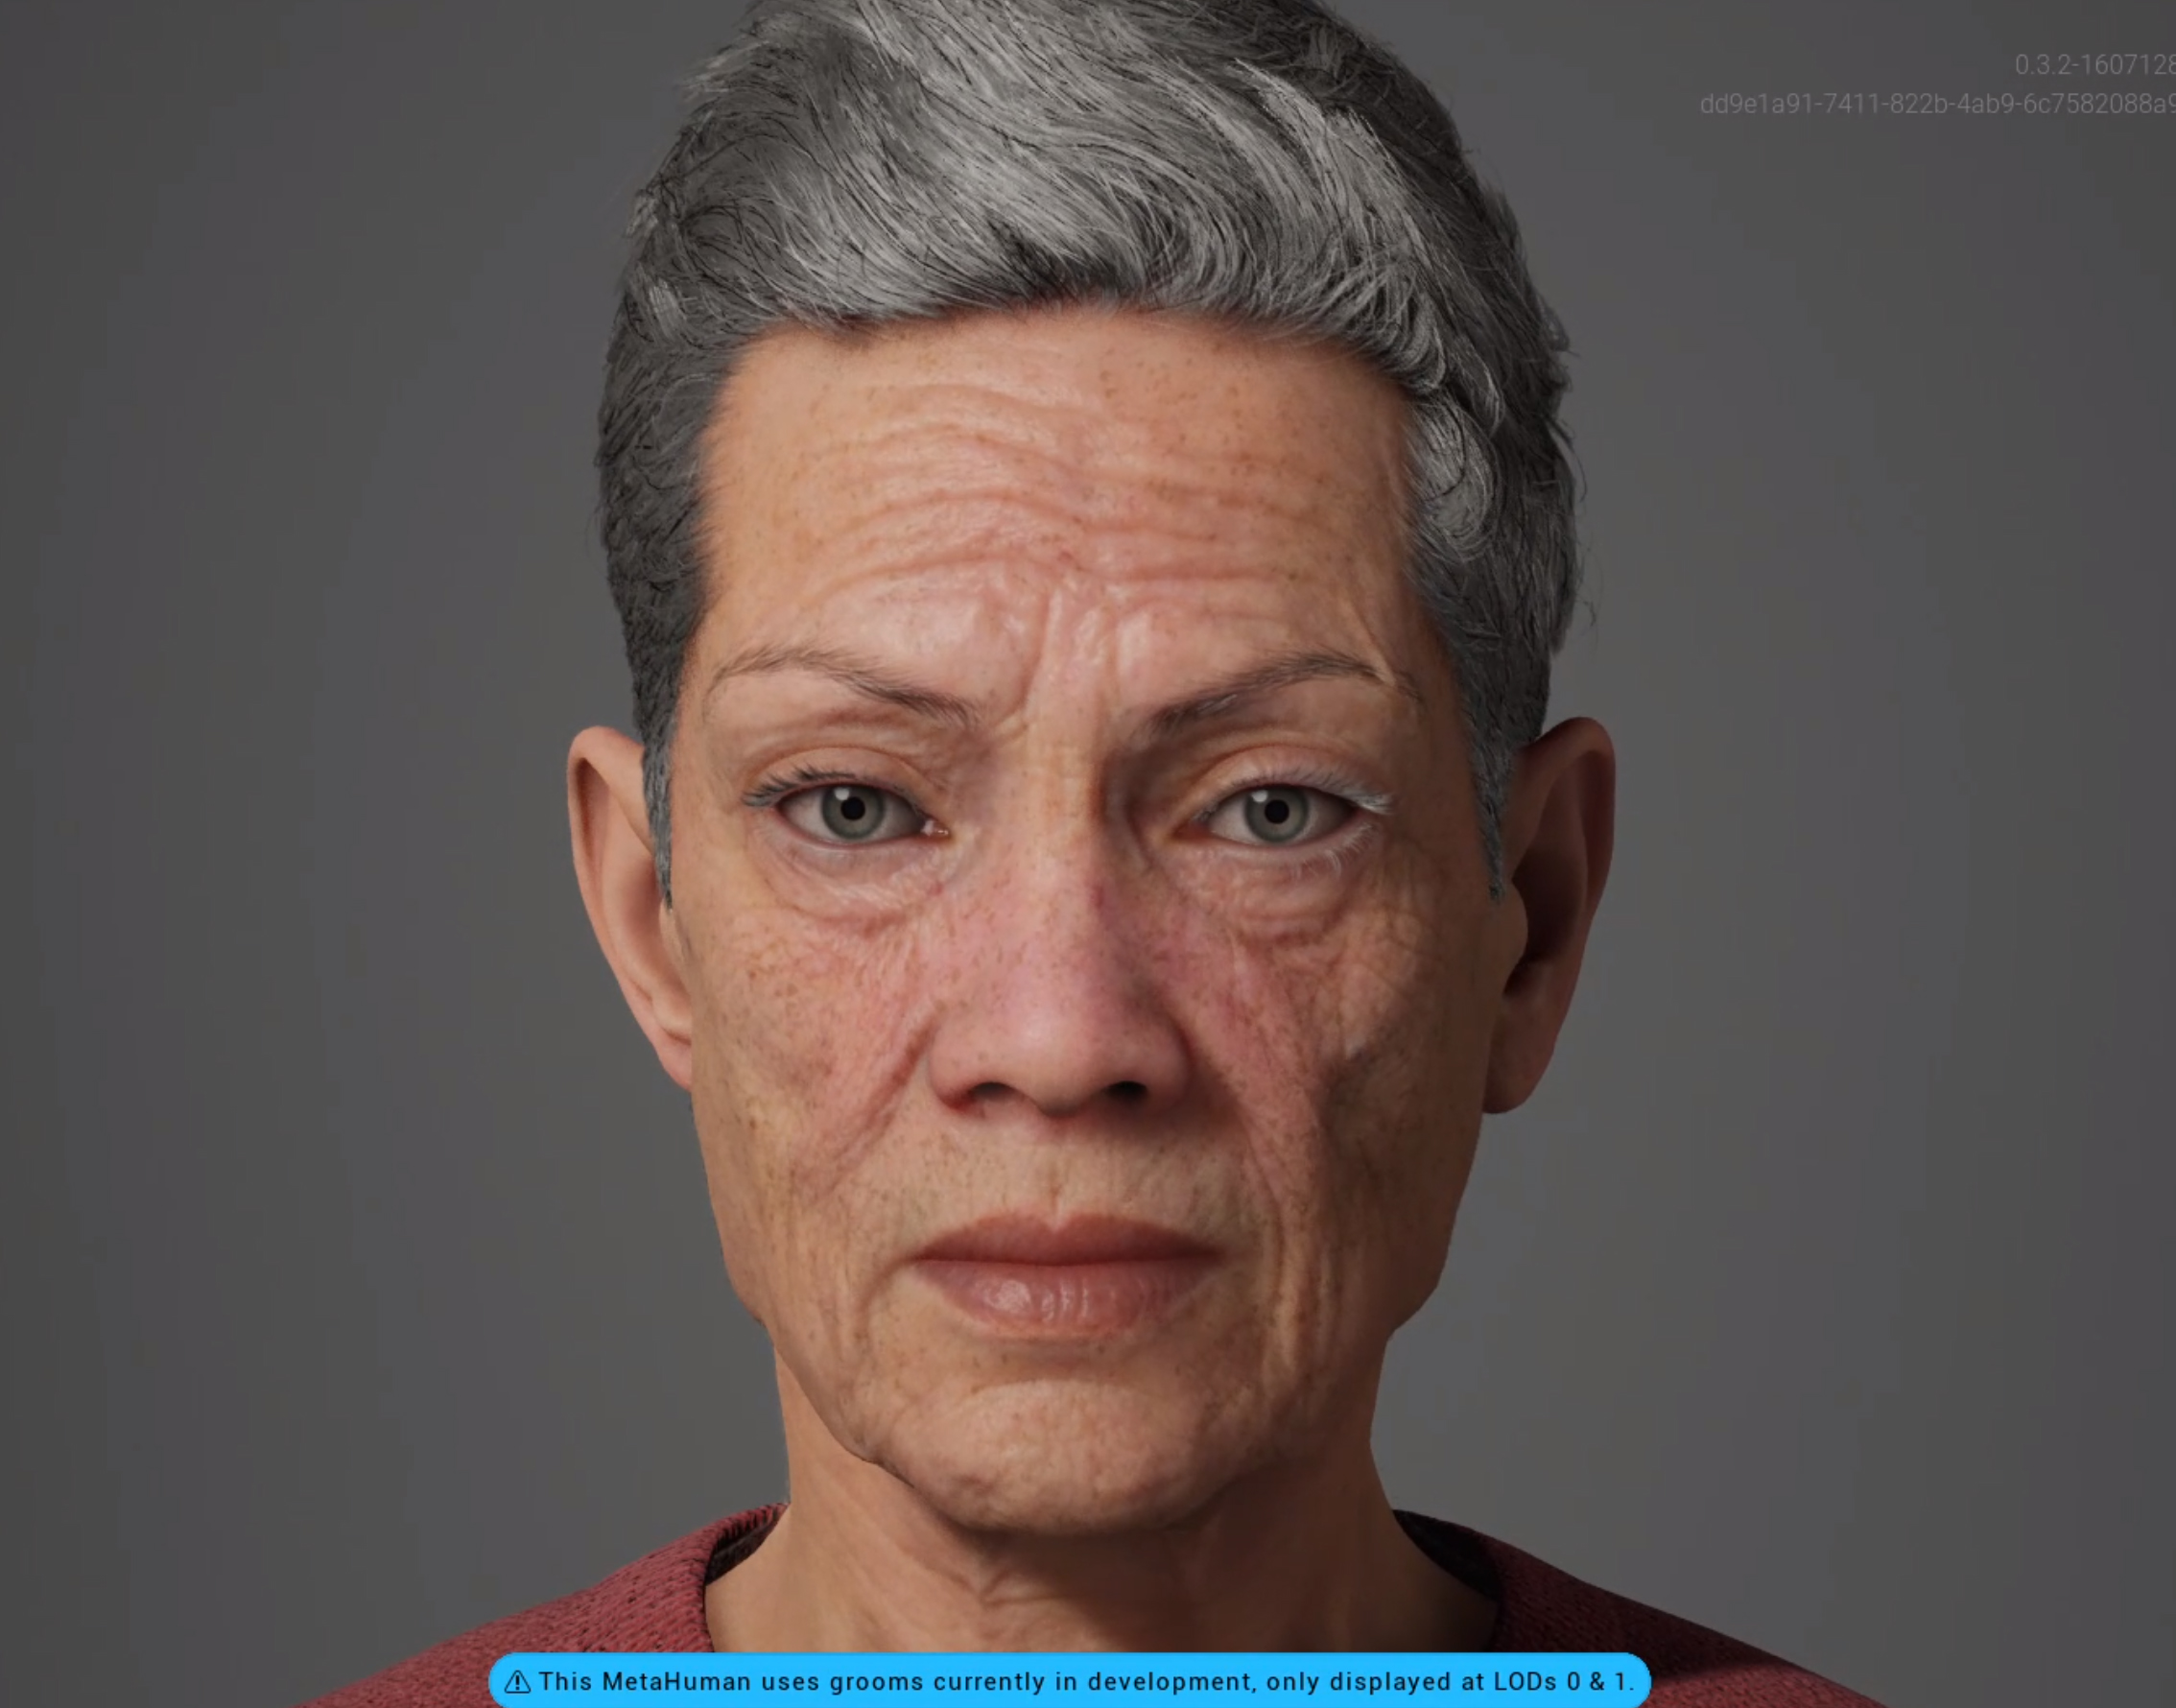 This is Rose a MetaHuman created with the Unreal Engine Metahuman Creator